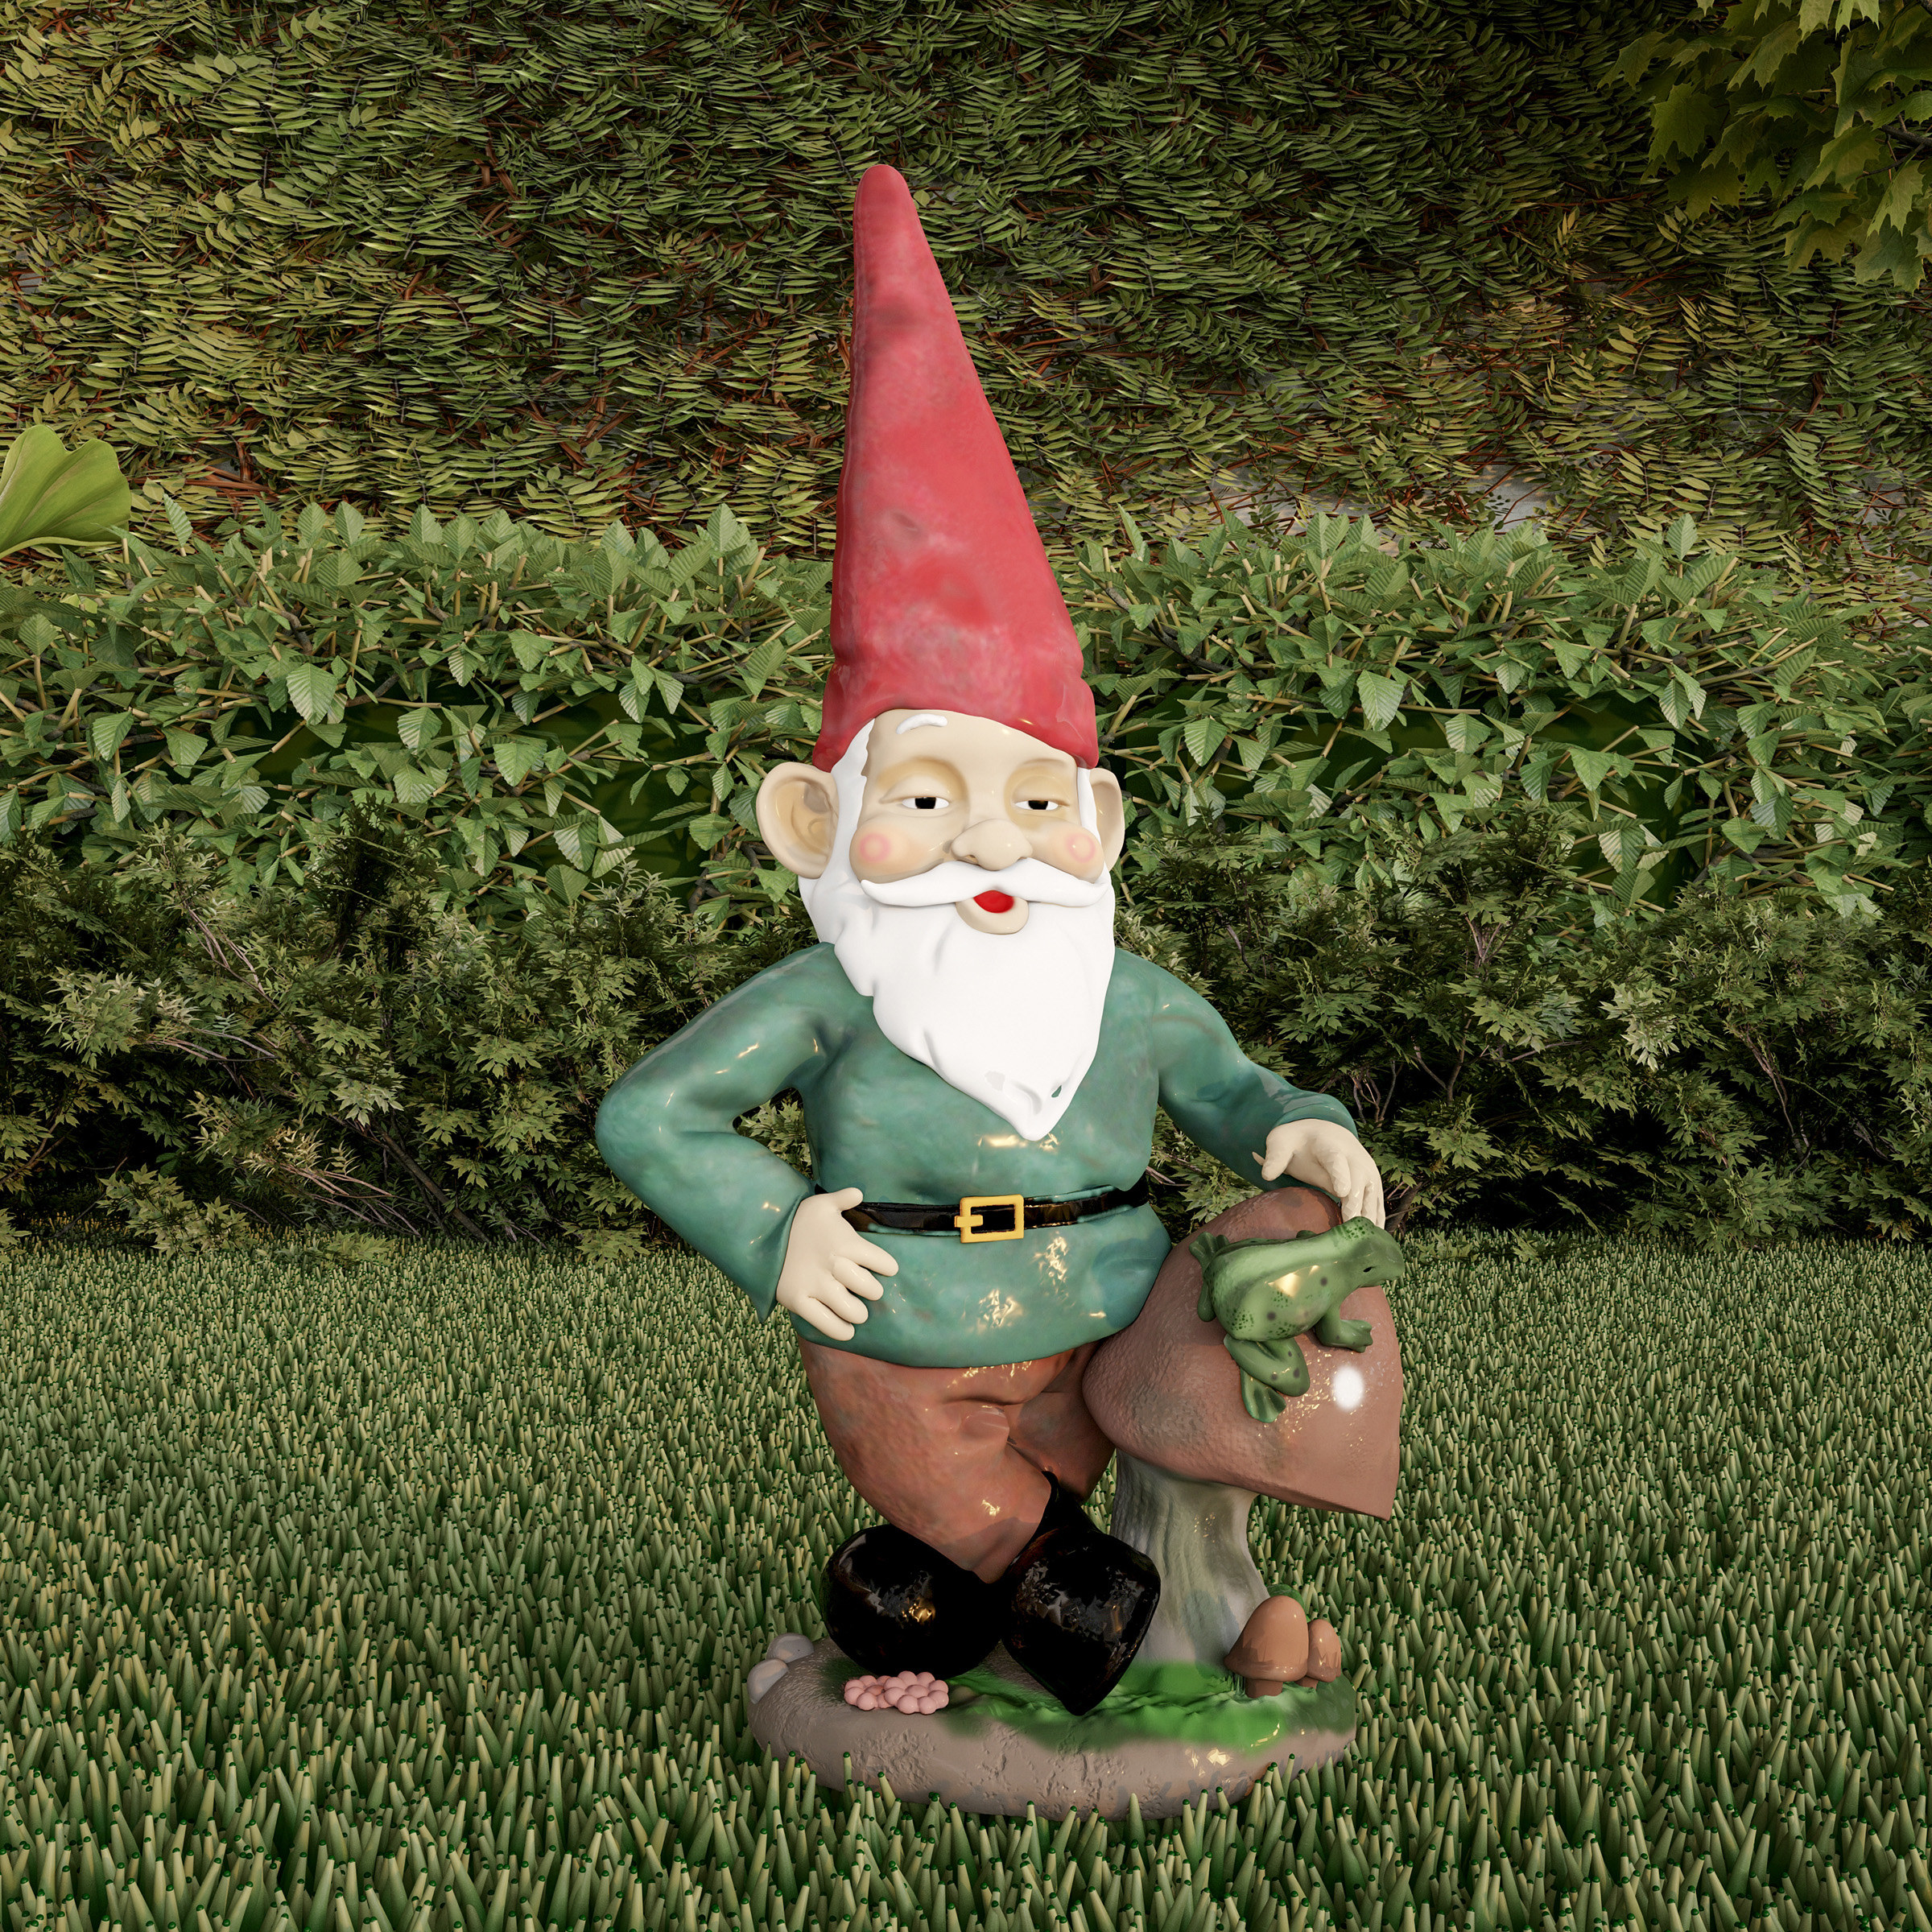 The classic style Pure Garden Lawn Gnome Statue in a front yard